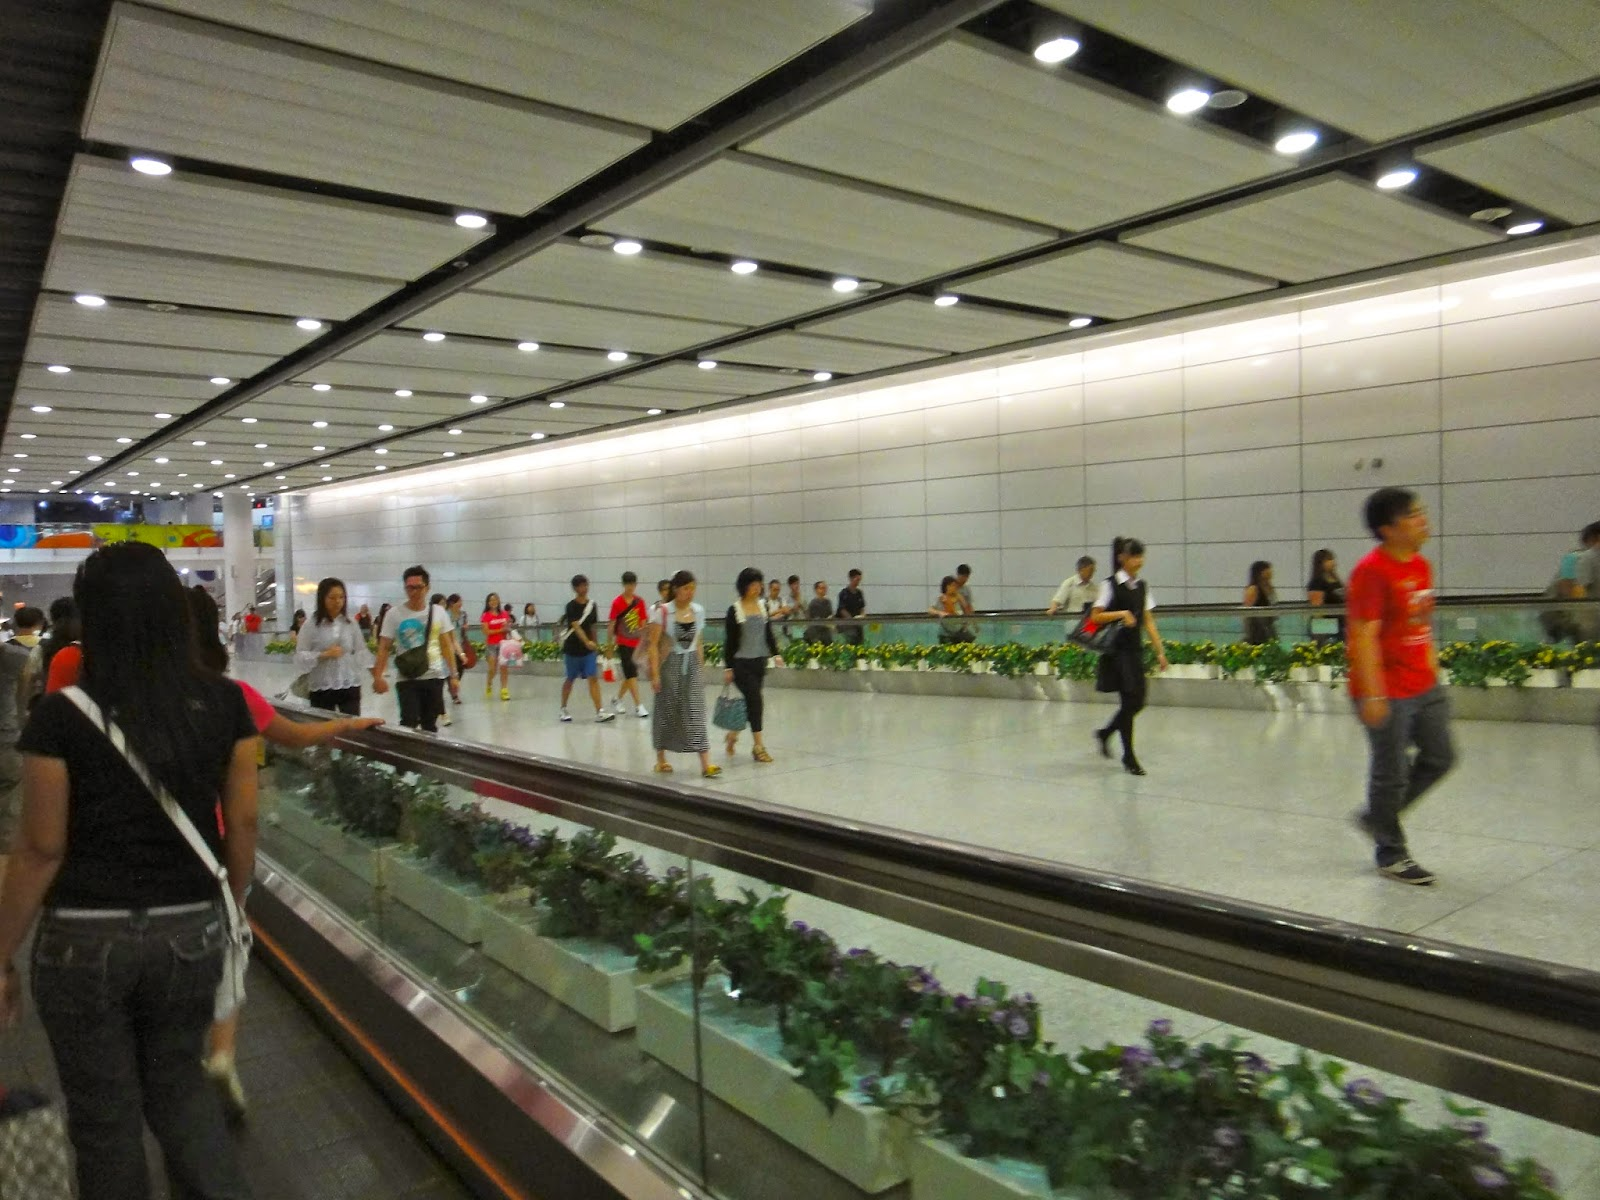 HK Airport Express Line Transfer Pathway from Central MTR